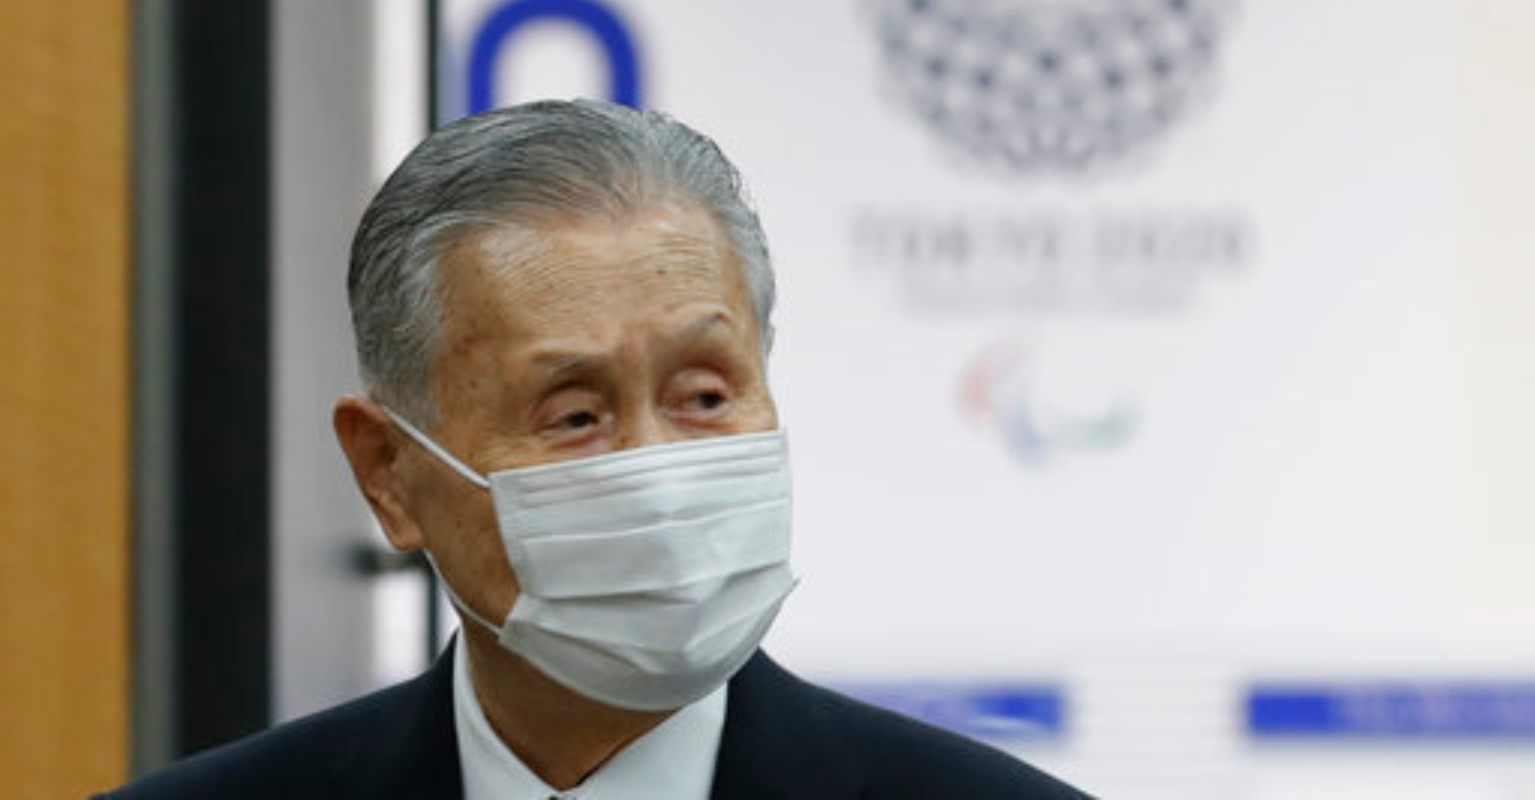 Tokyo 2020 chief called to resign after saying women talk too much at meetings